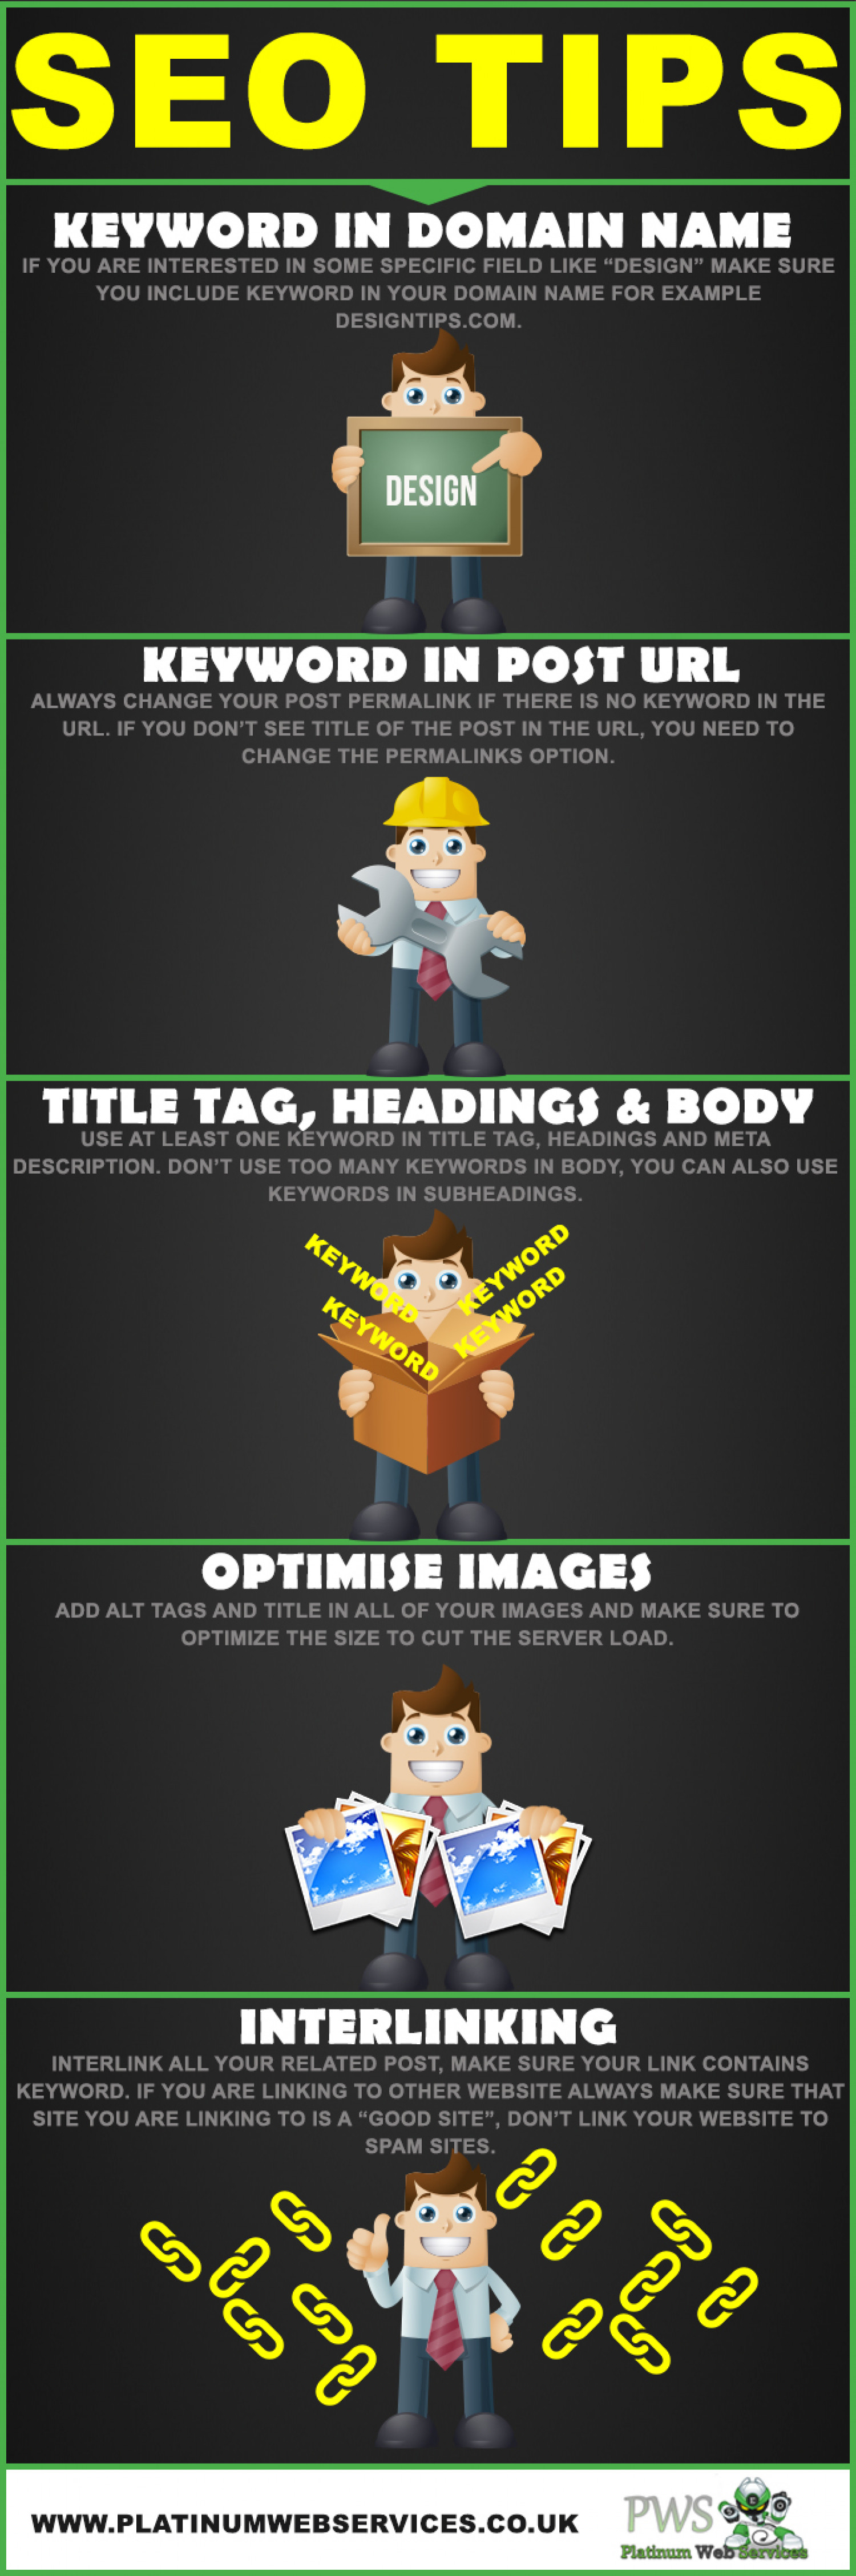 SEO Services UK Infographic